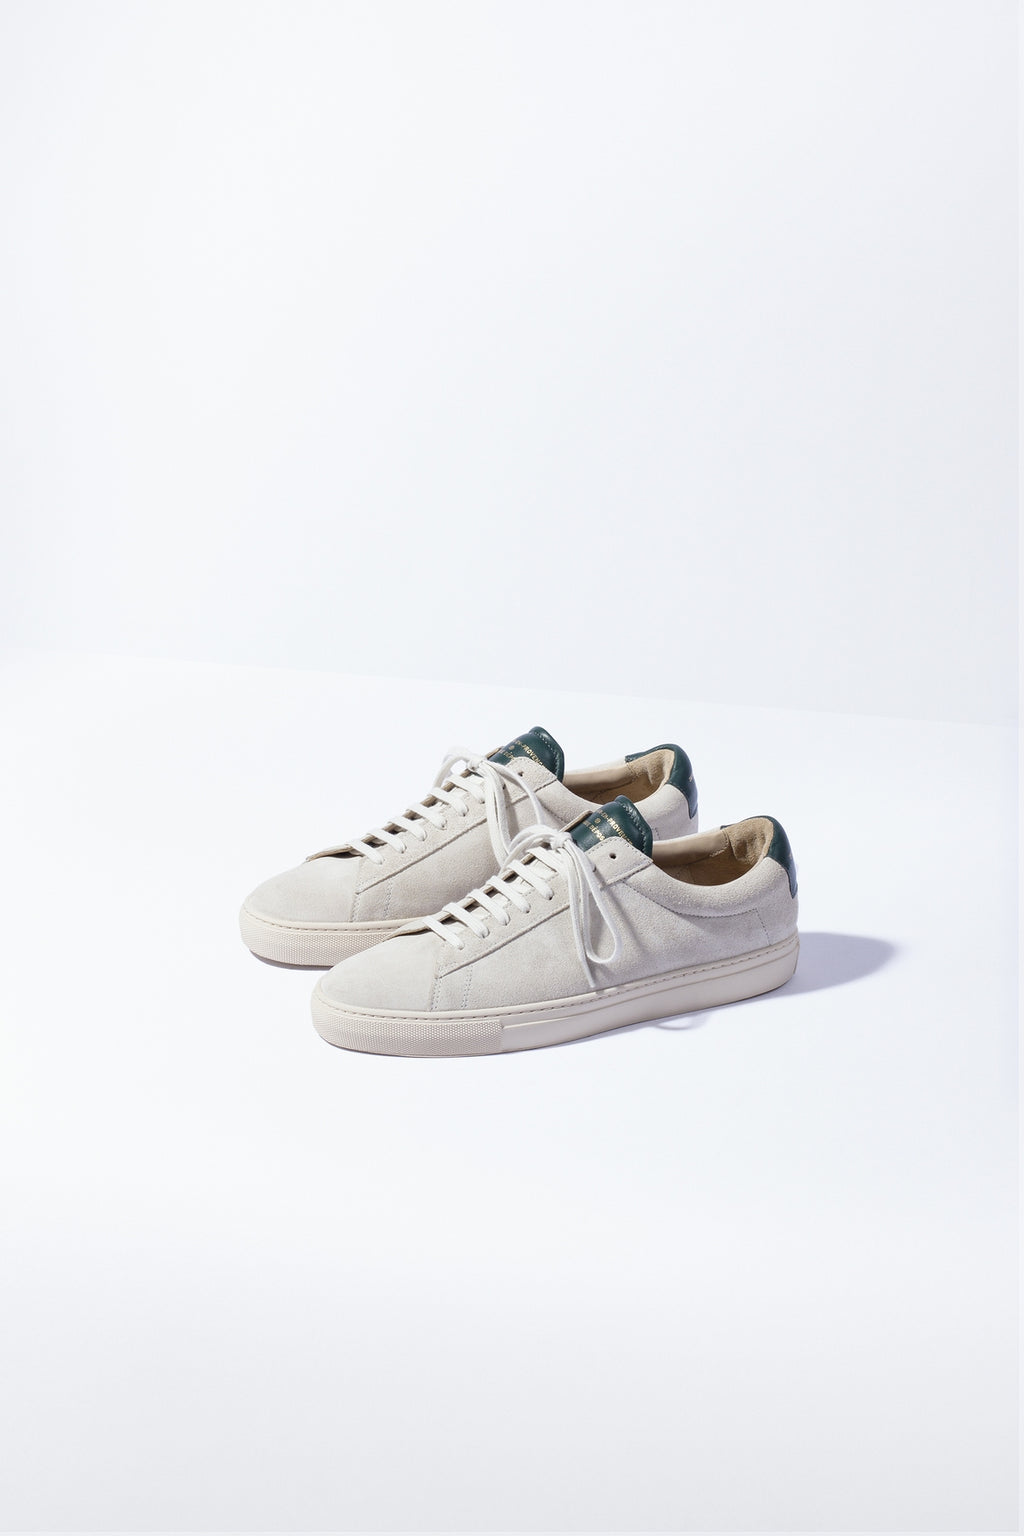 ZESPA - ZSP4. HGH APLA SUEDE  OFF WHITE / SAPIN